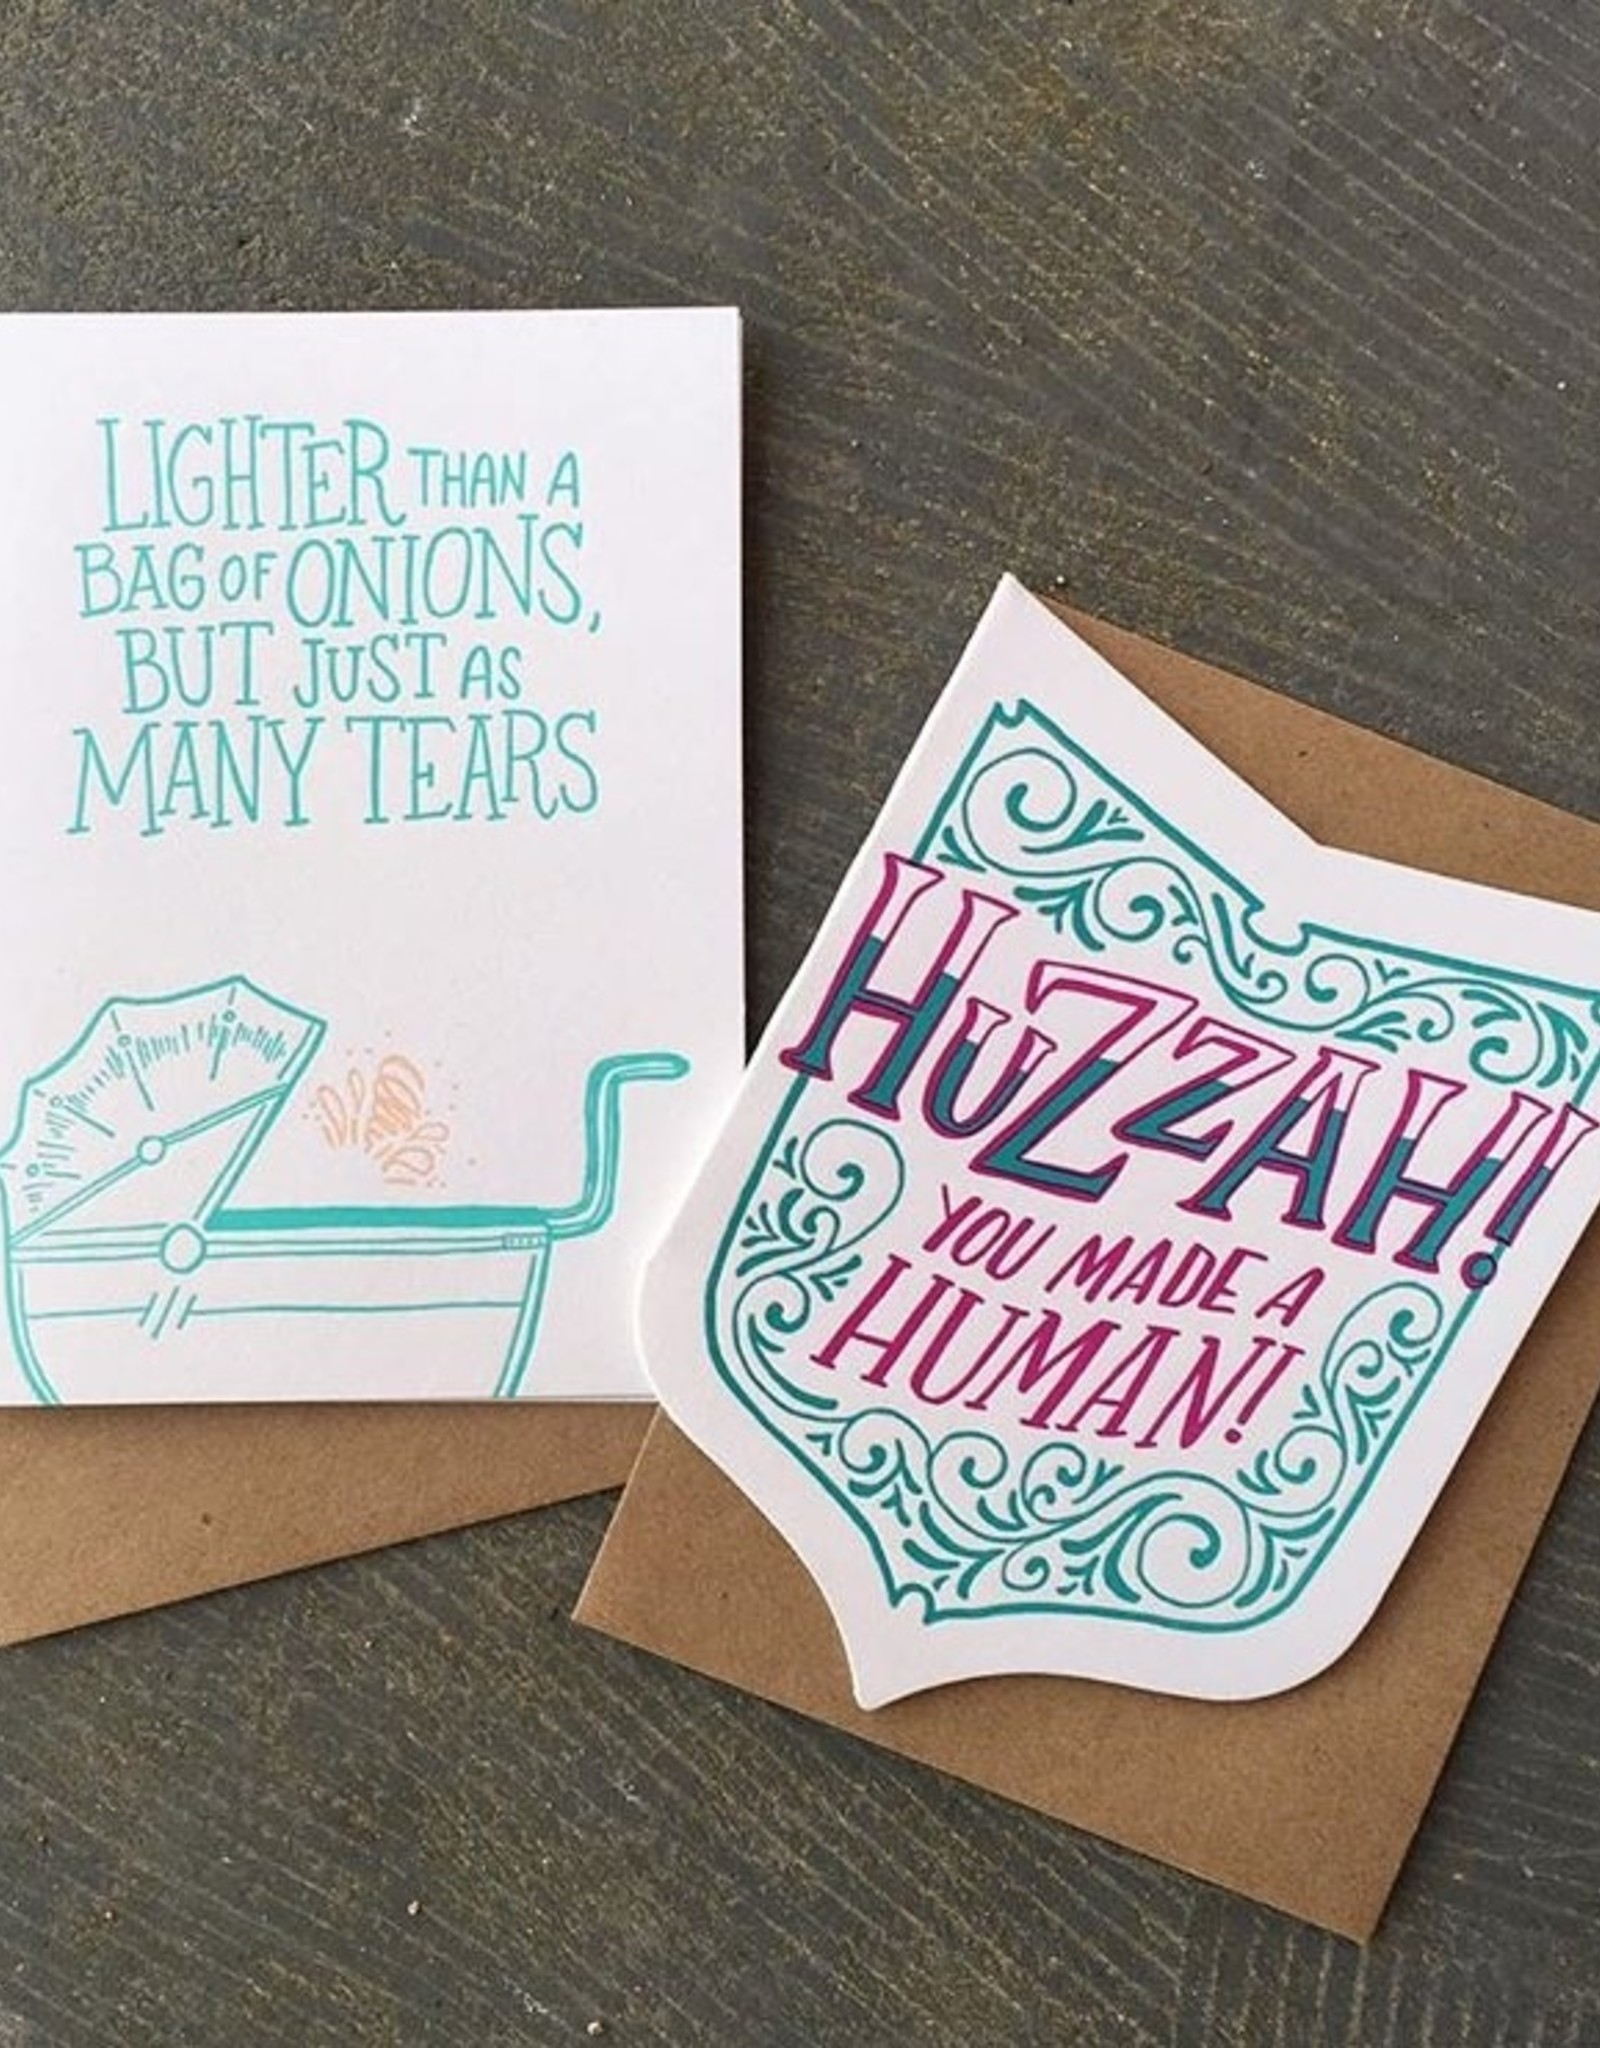 Huzzah You Made a Human! Greeting Card